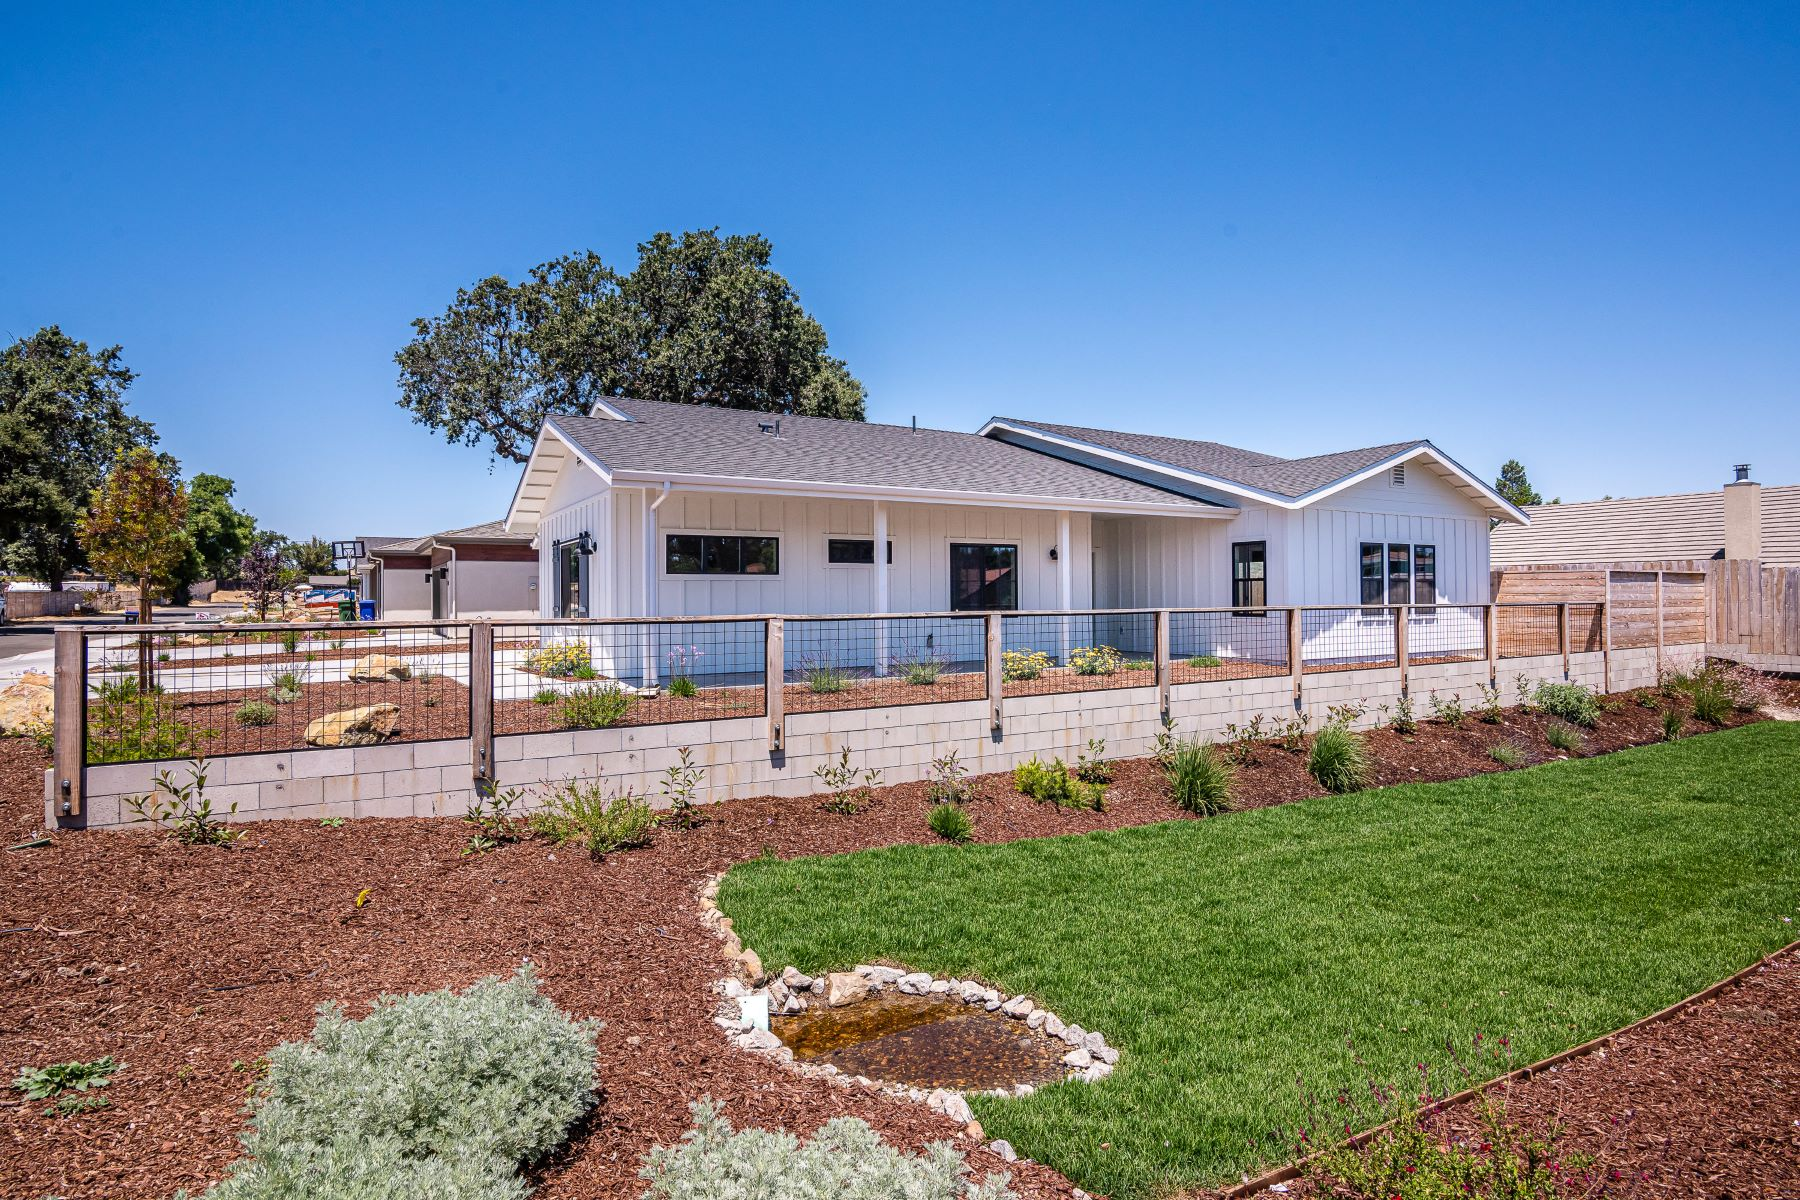 Single Family Homes for Sale at BRAND NEW HOME IN TEMPLETON 196 Rowan Way Templeton, California 93465 United States